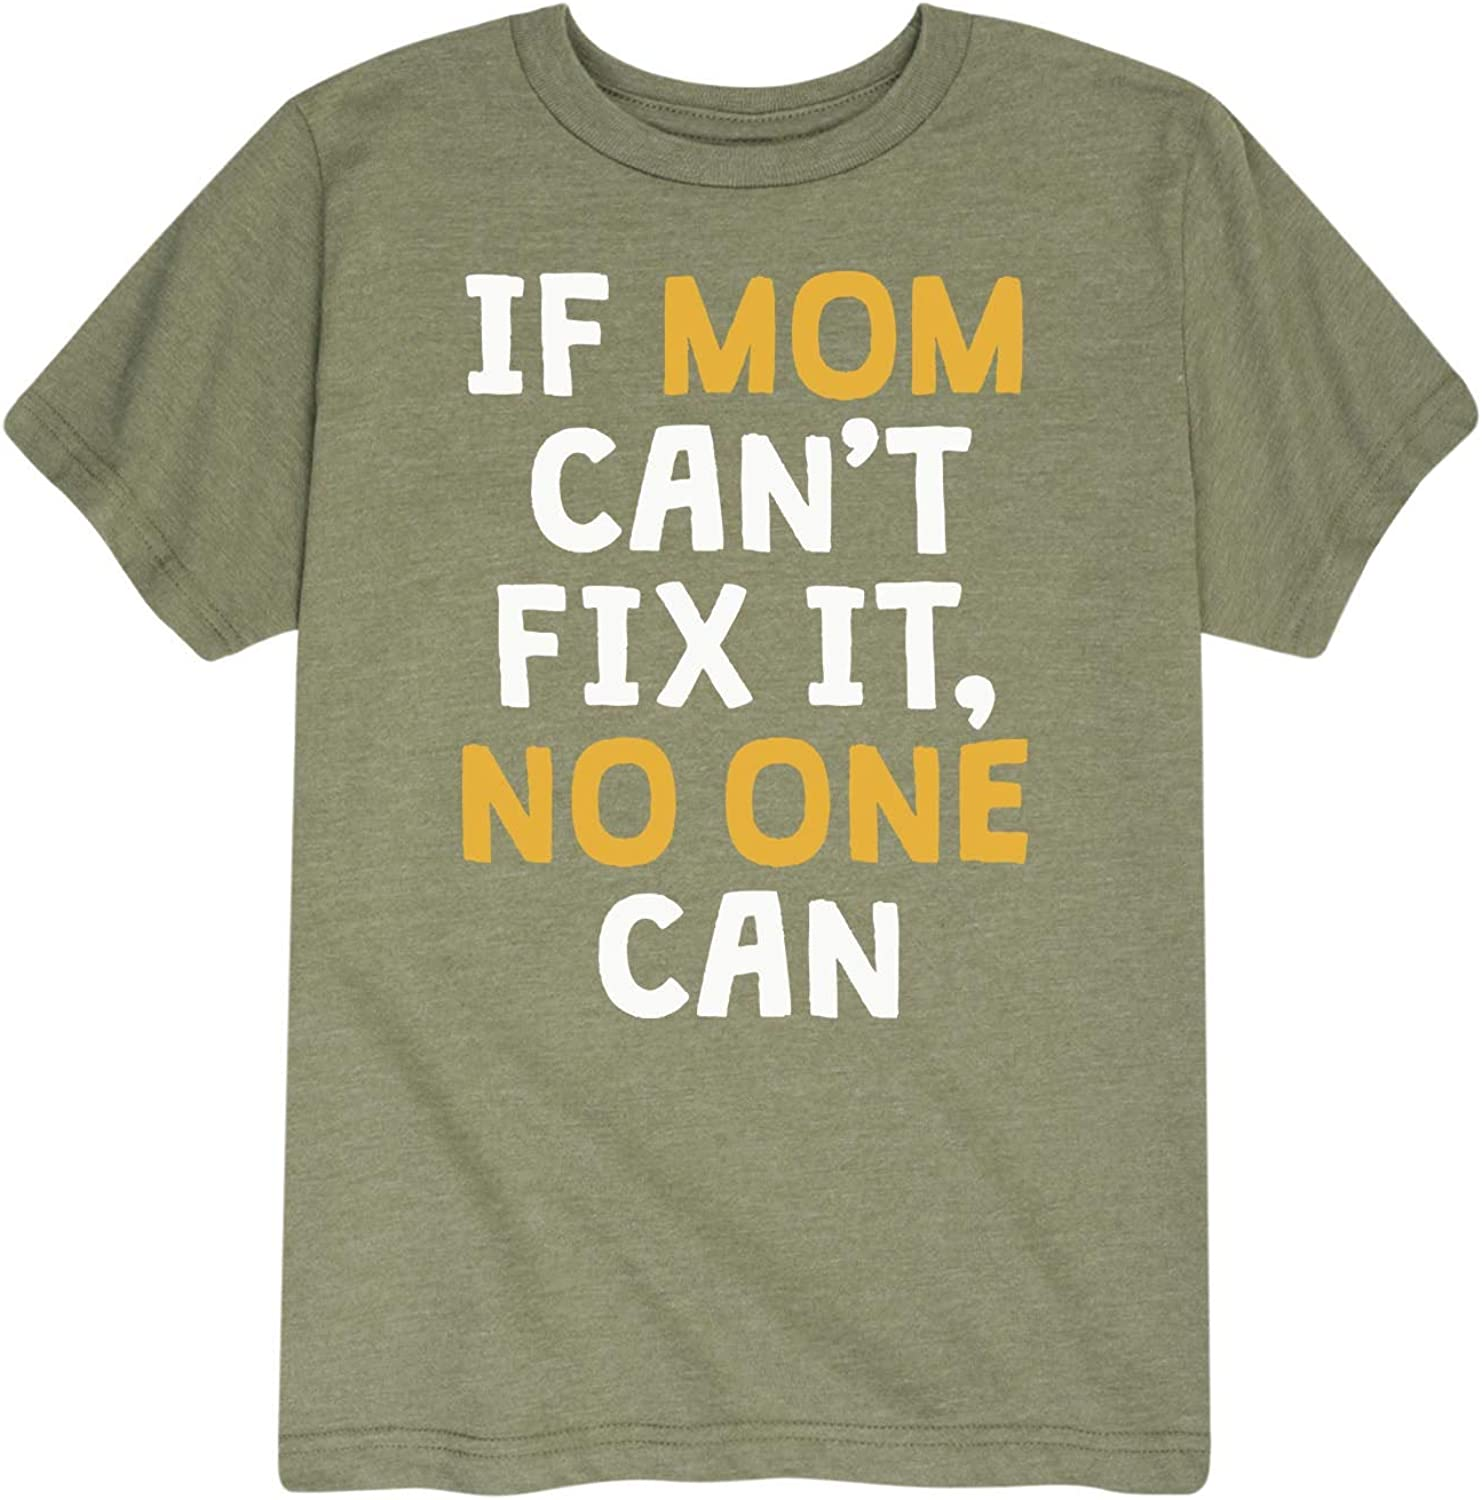 If Mom Cant Fix It No one Can Toddler Short Sleeve Tee